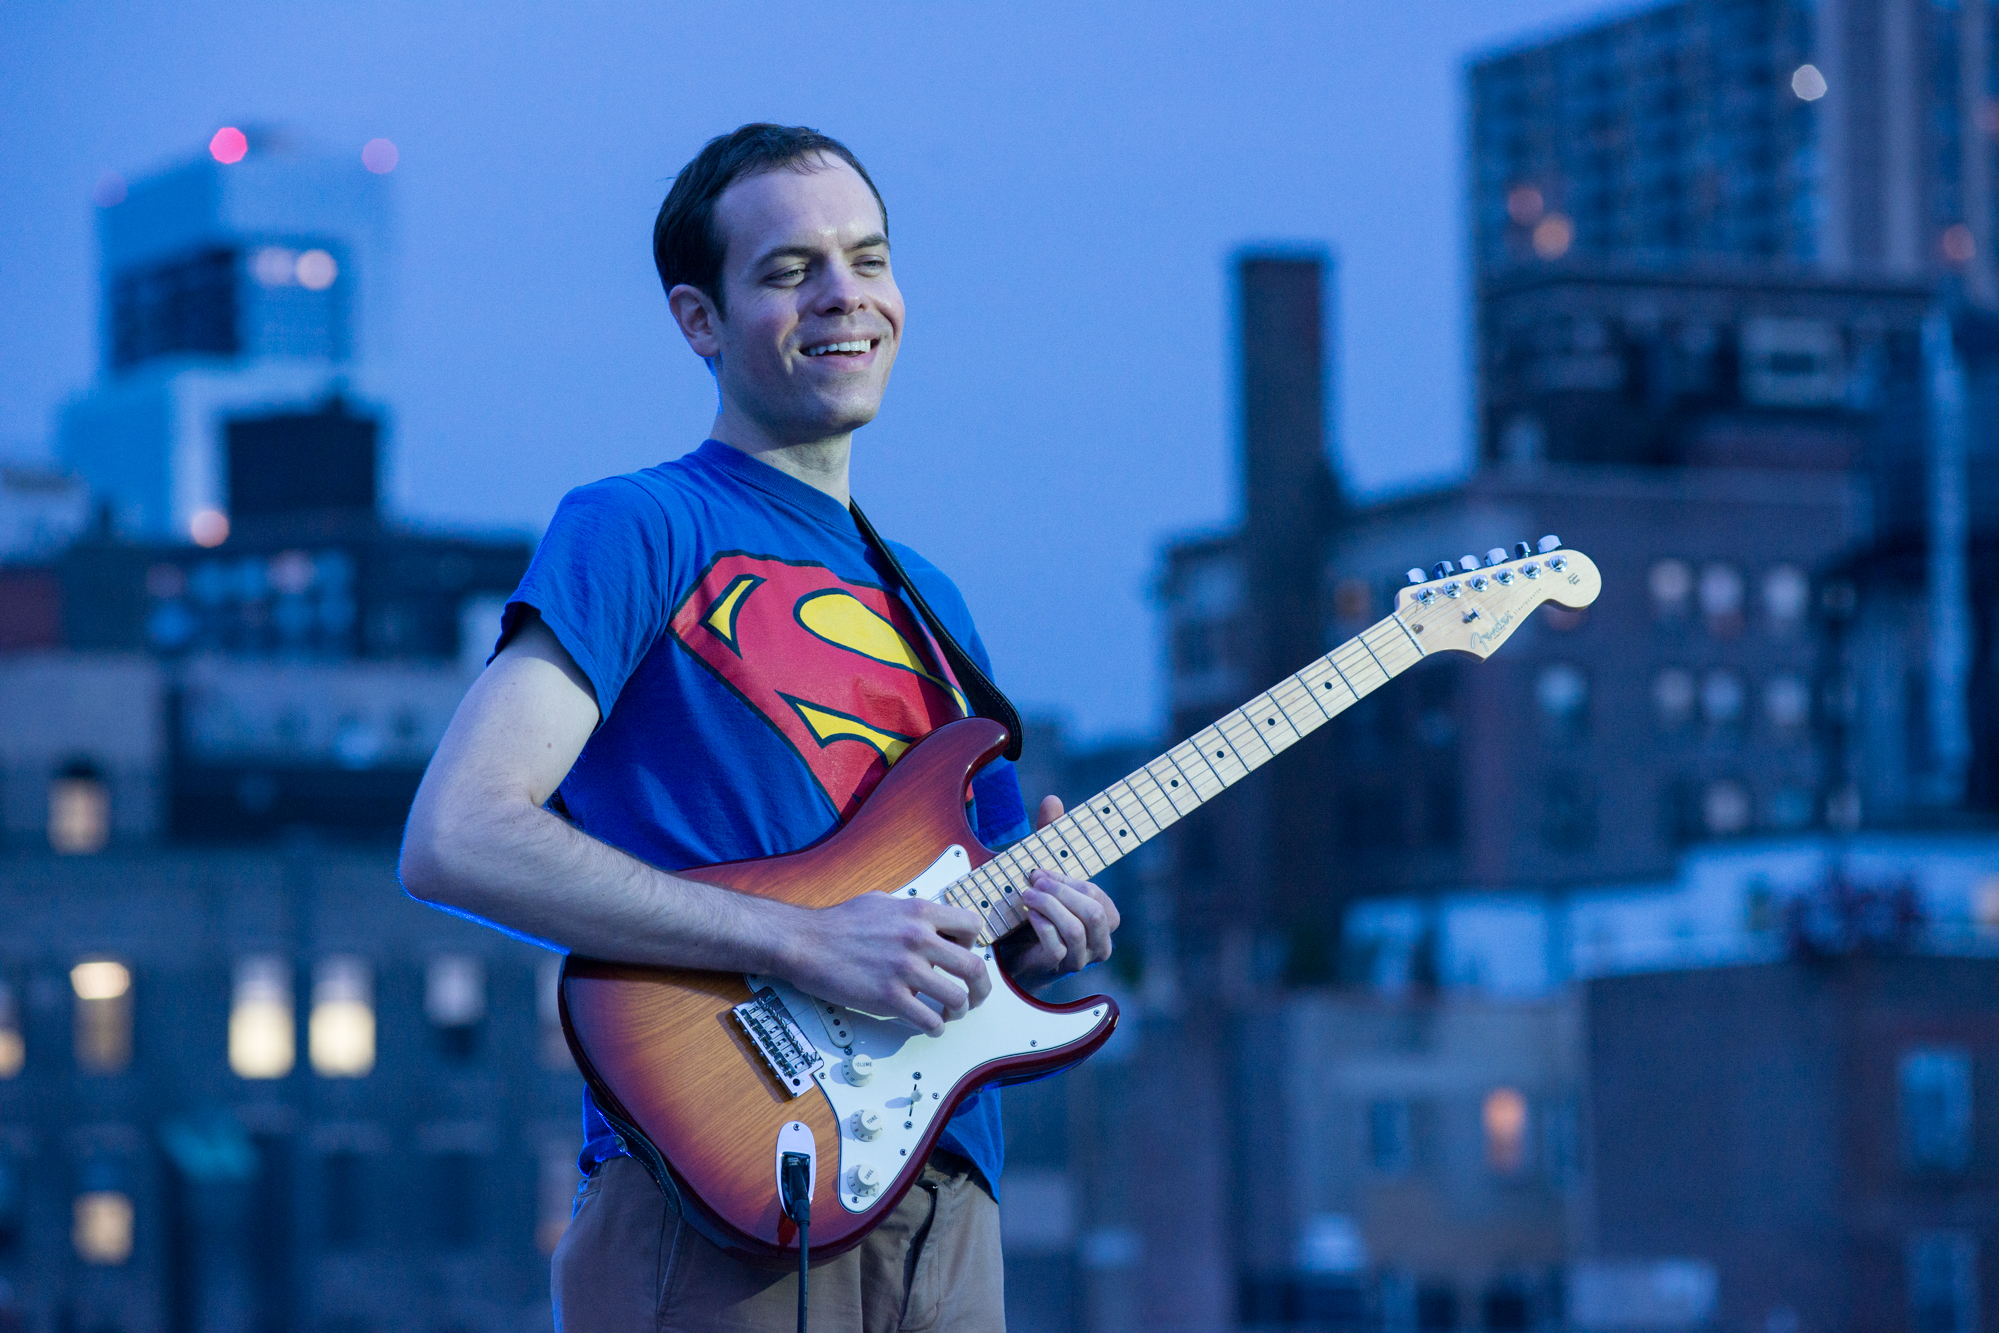 allen-childs-musician-portraits-roof-new-york-njohnston-photography-105.jpg